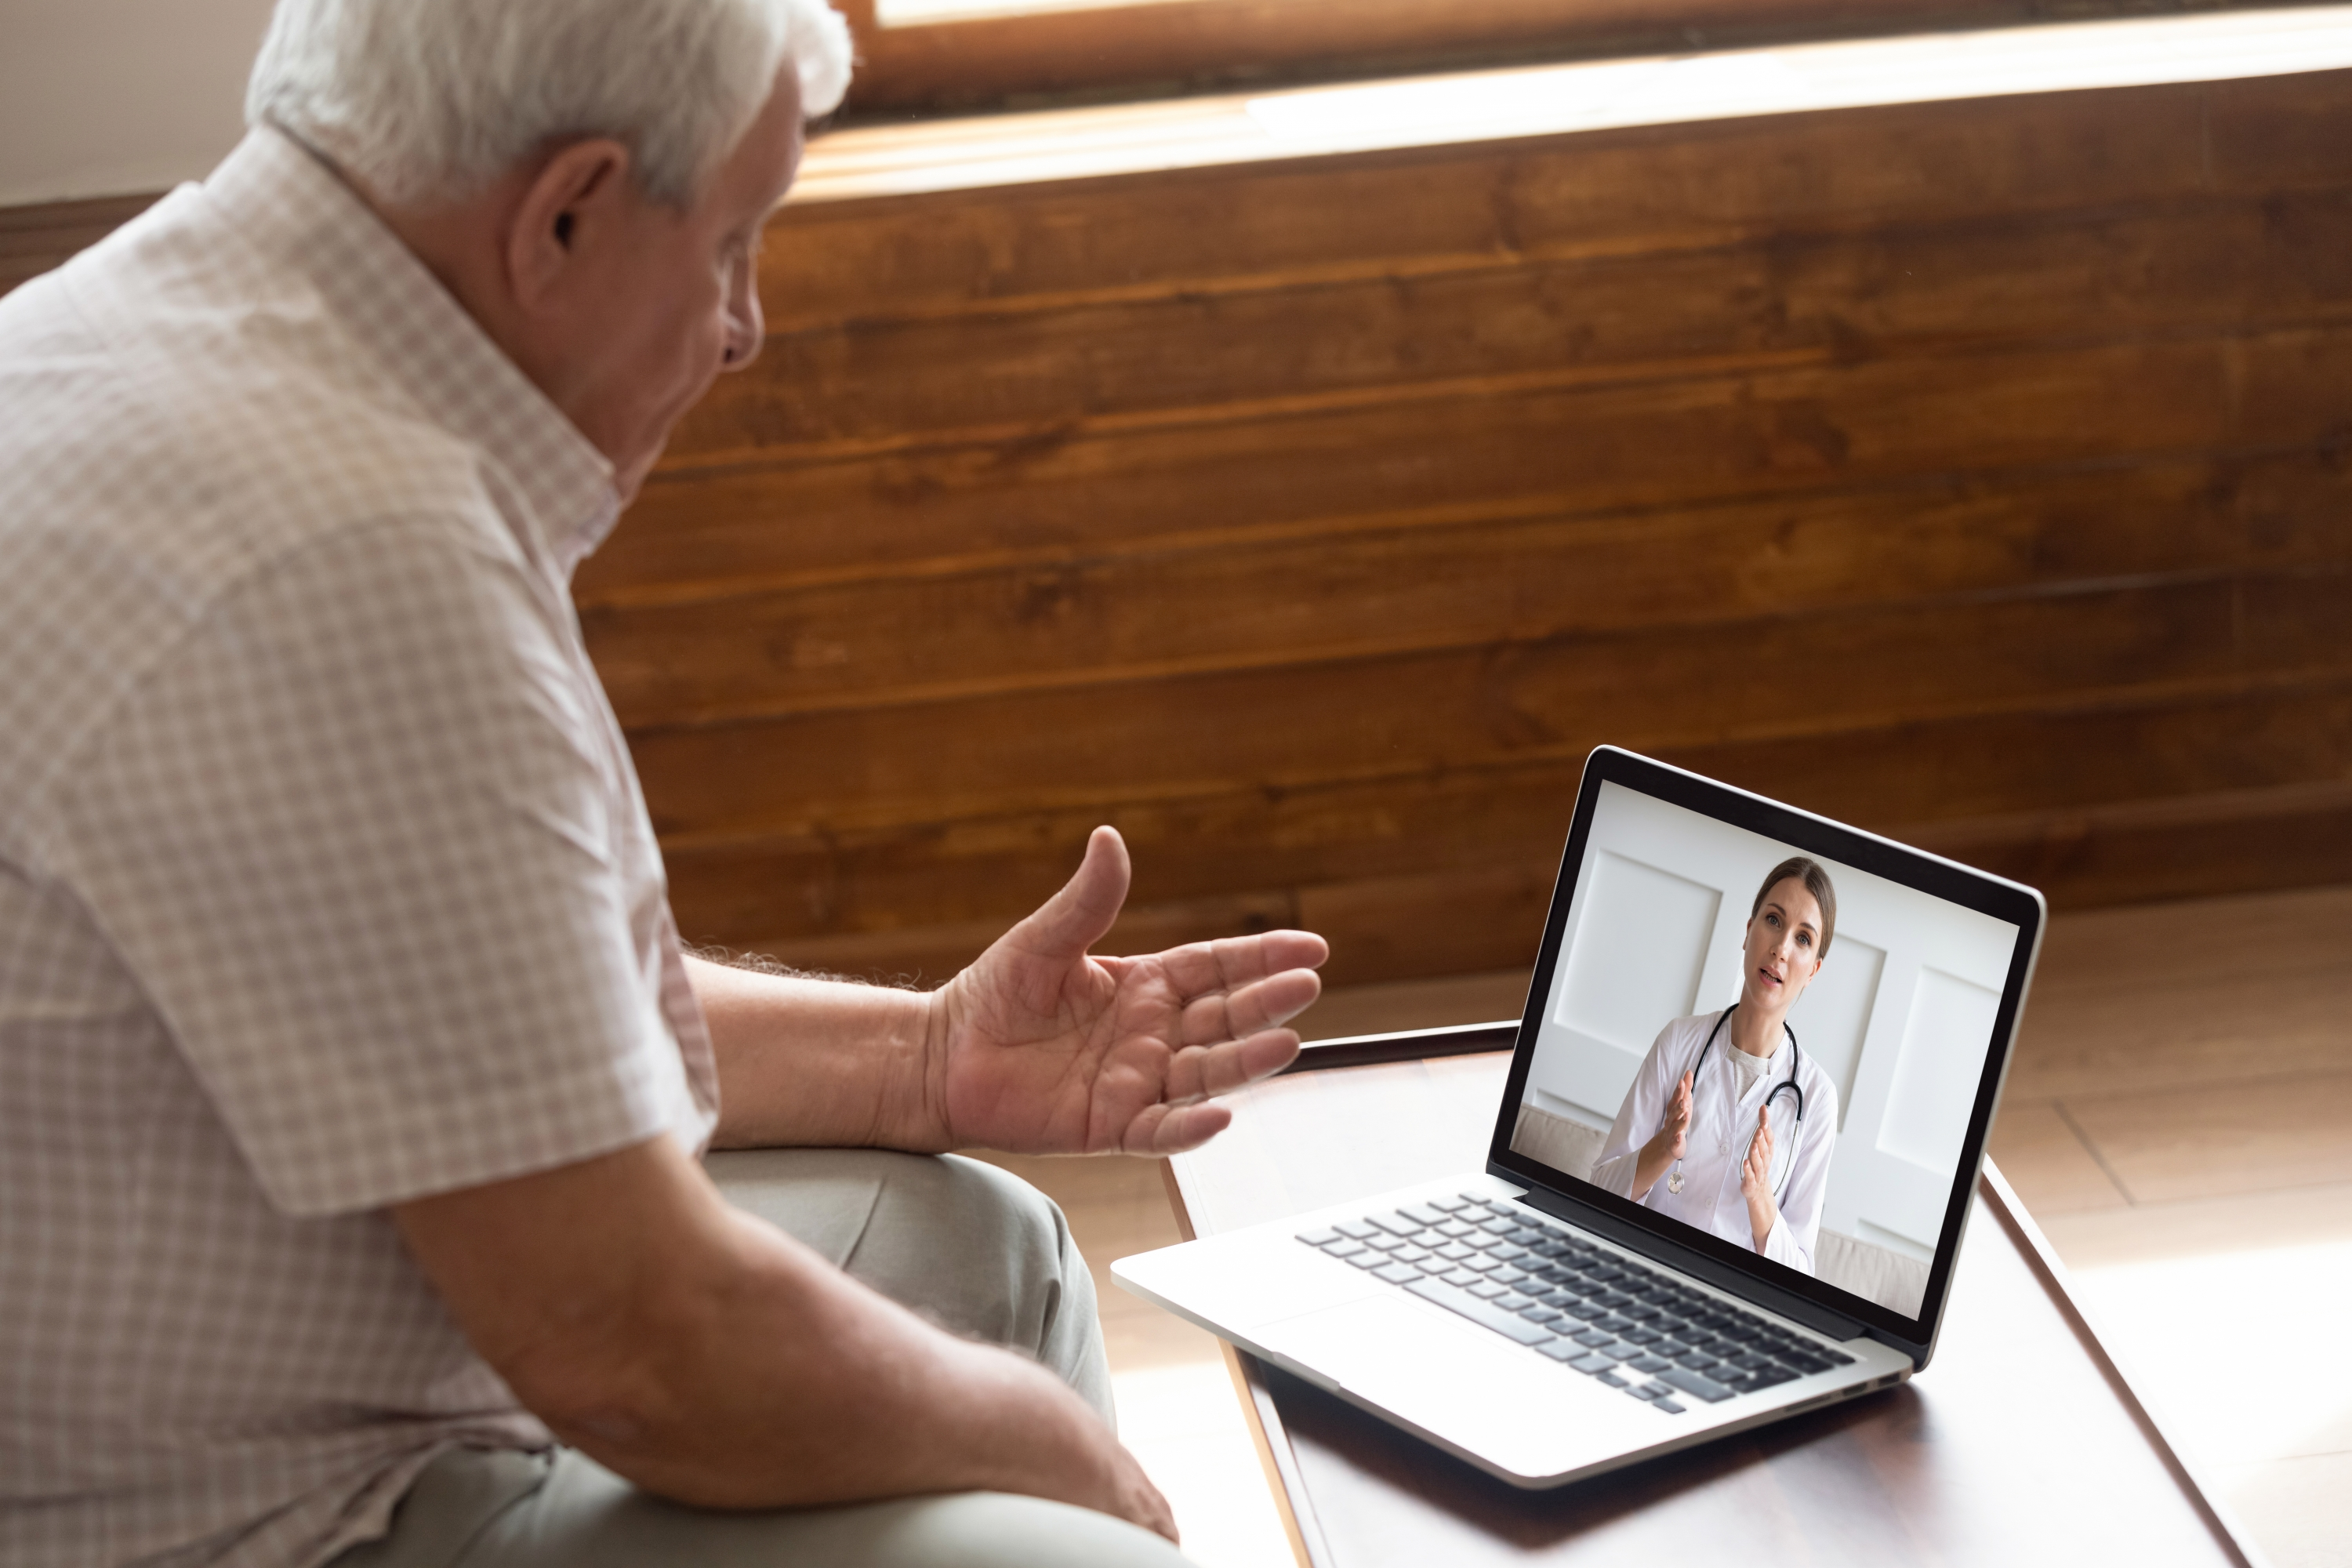 New Study Suggests Ways Doctors Can Foster Relationships Through Telehealth